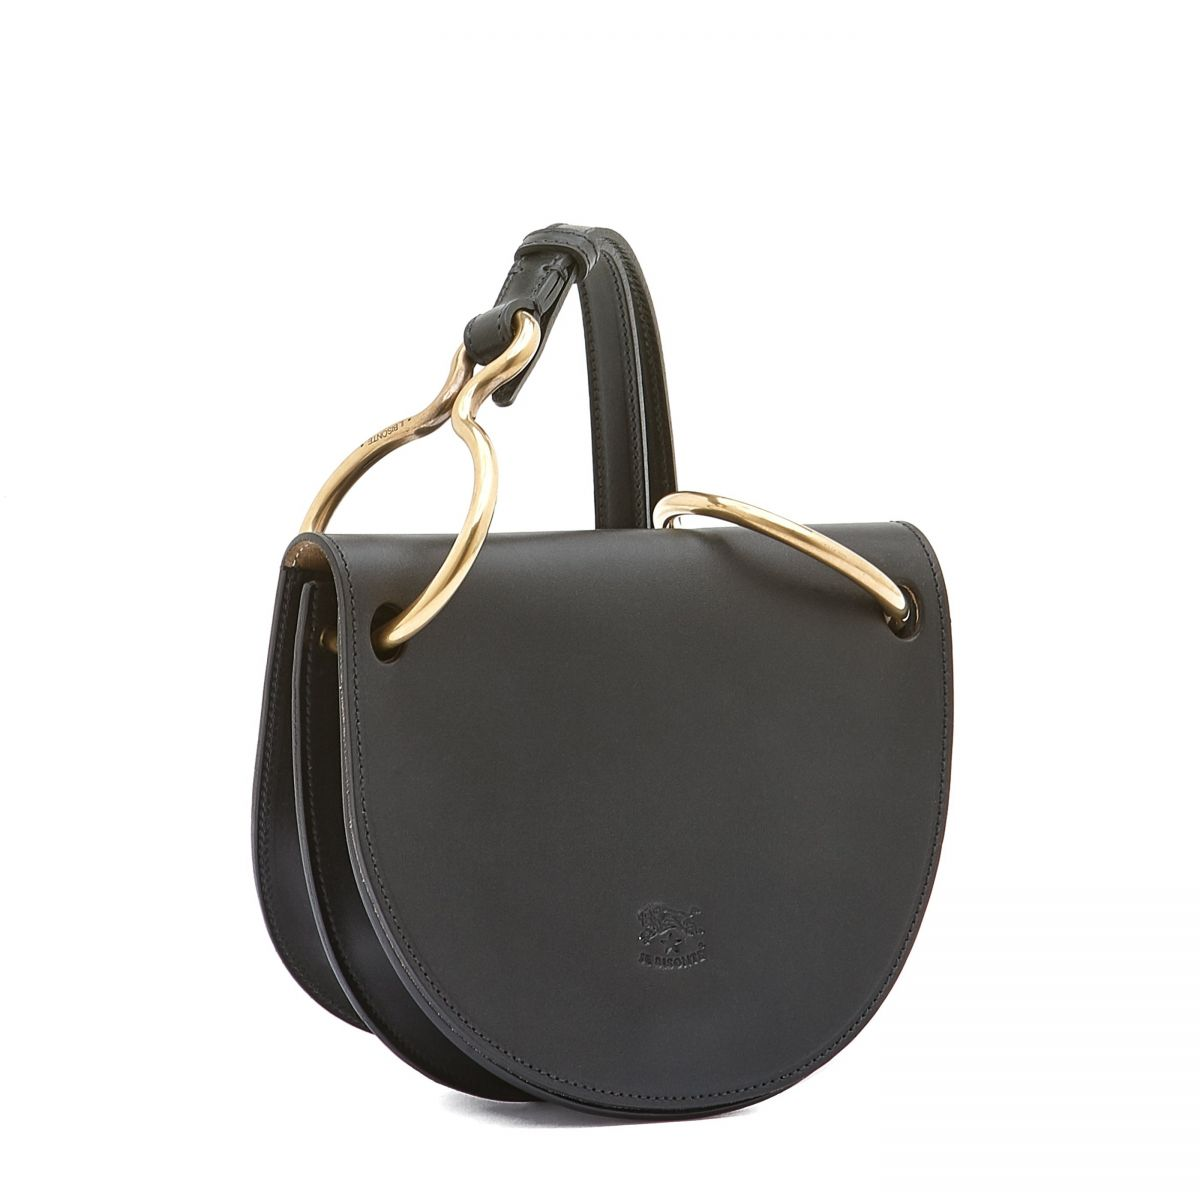 Women's Crossbody Bag Consuelo in Cowhide Leather BCR192 color Black | Details